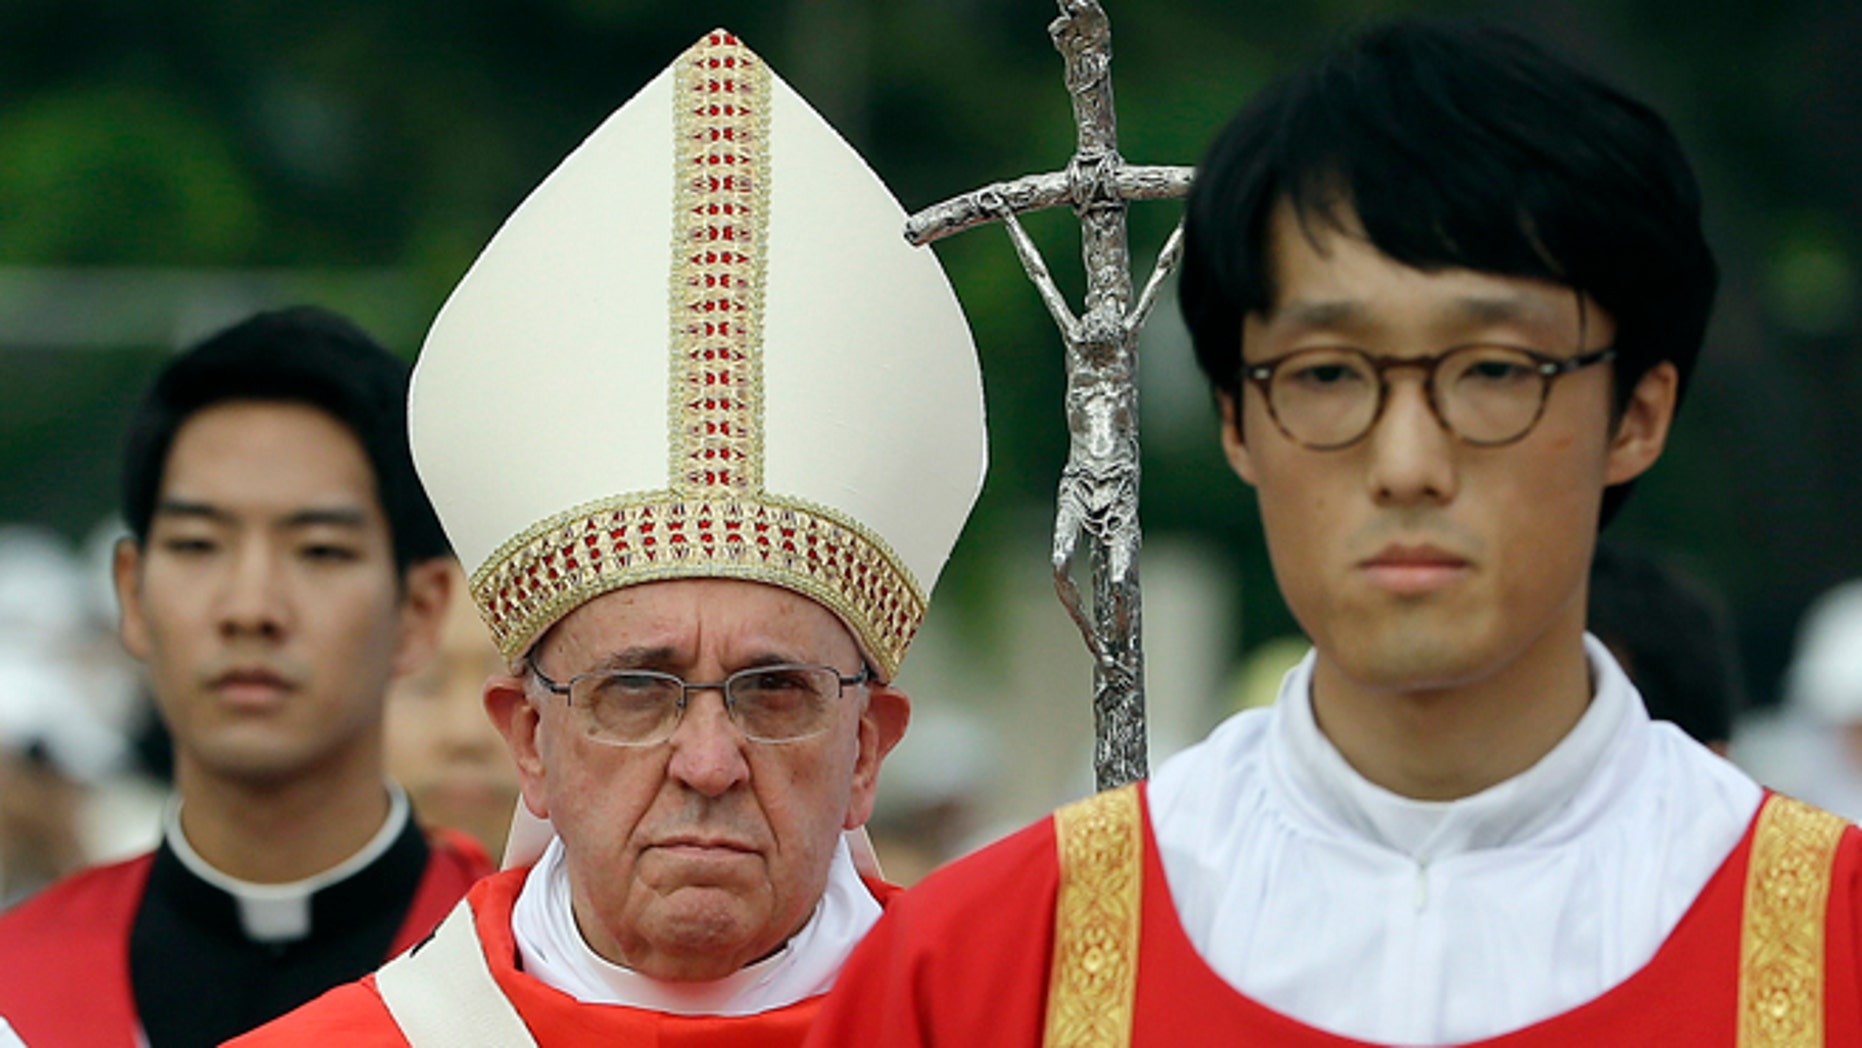 Pope Francis celebrates a mass and the beatification of Paul Yun ji-Chung and 123 martyr companions at Gwanghwamun Gate in Seoul, South Korea, Saturday, Aug. 16, 2014. Paul Yun Ji-Chung was born in 1759 and was among the earliest Catholics on the Korean peninsula. (AP Photo/Gregorio Borgia)